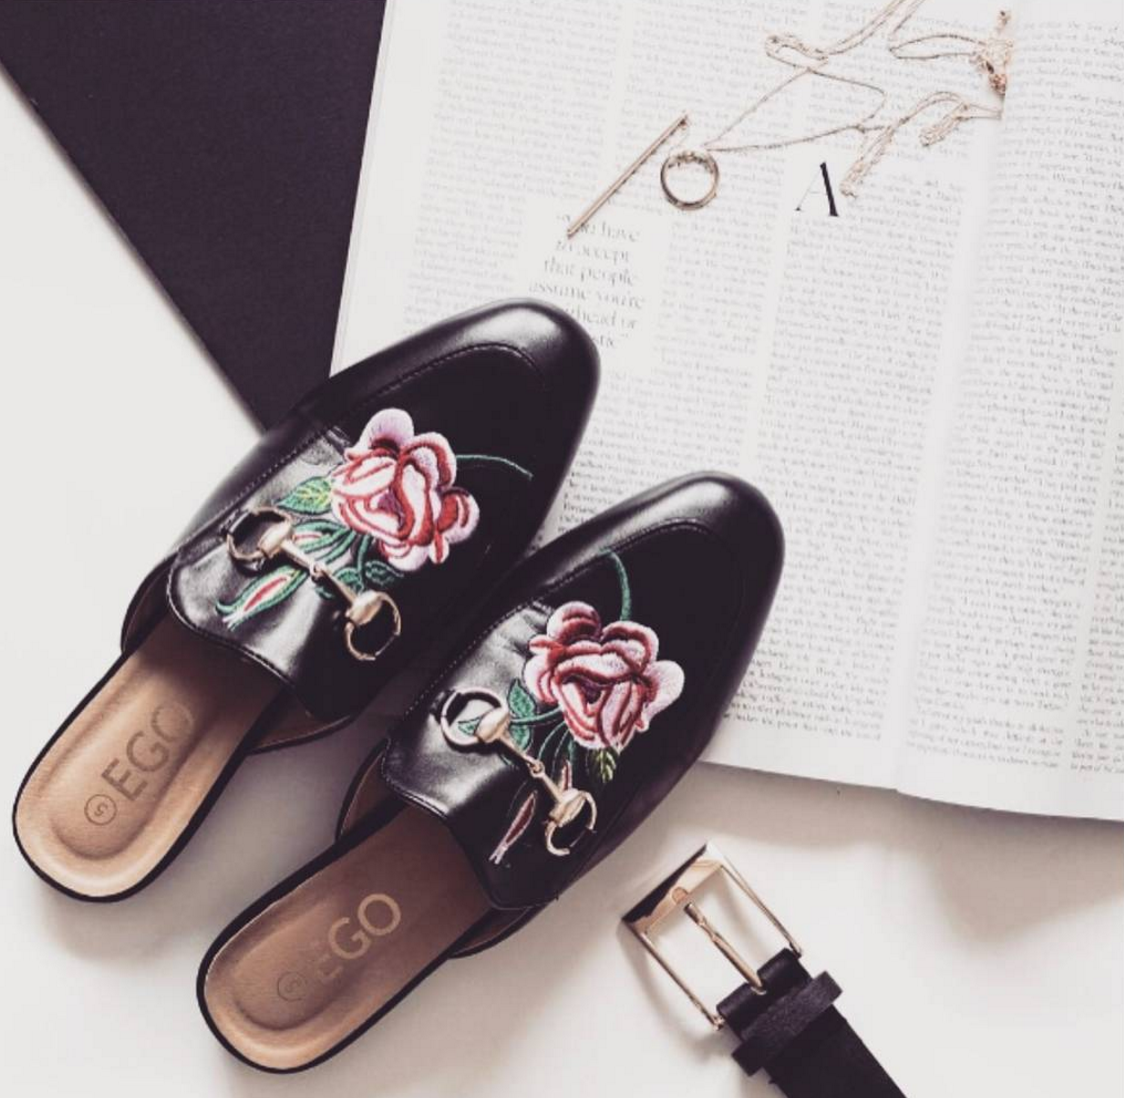 Cheska Floral Embroidered Flat Mule In Faux Leather @phasesofrobyn